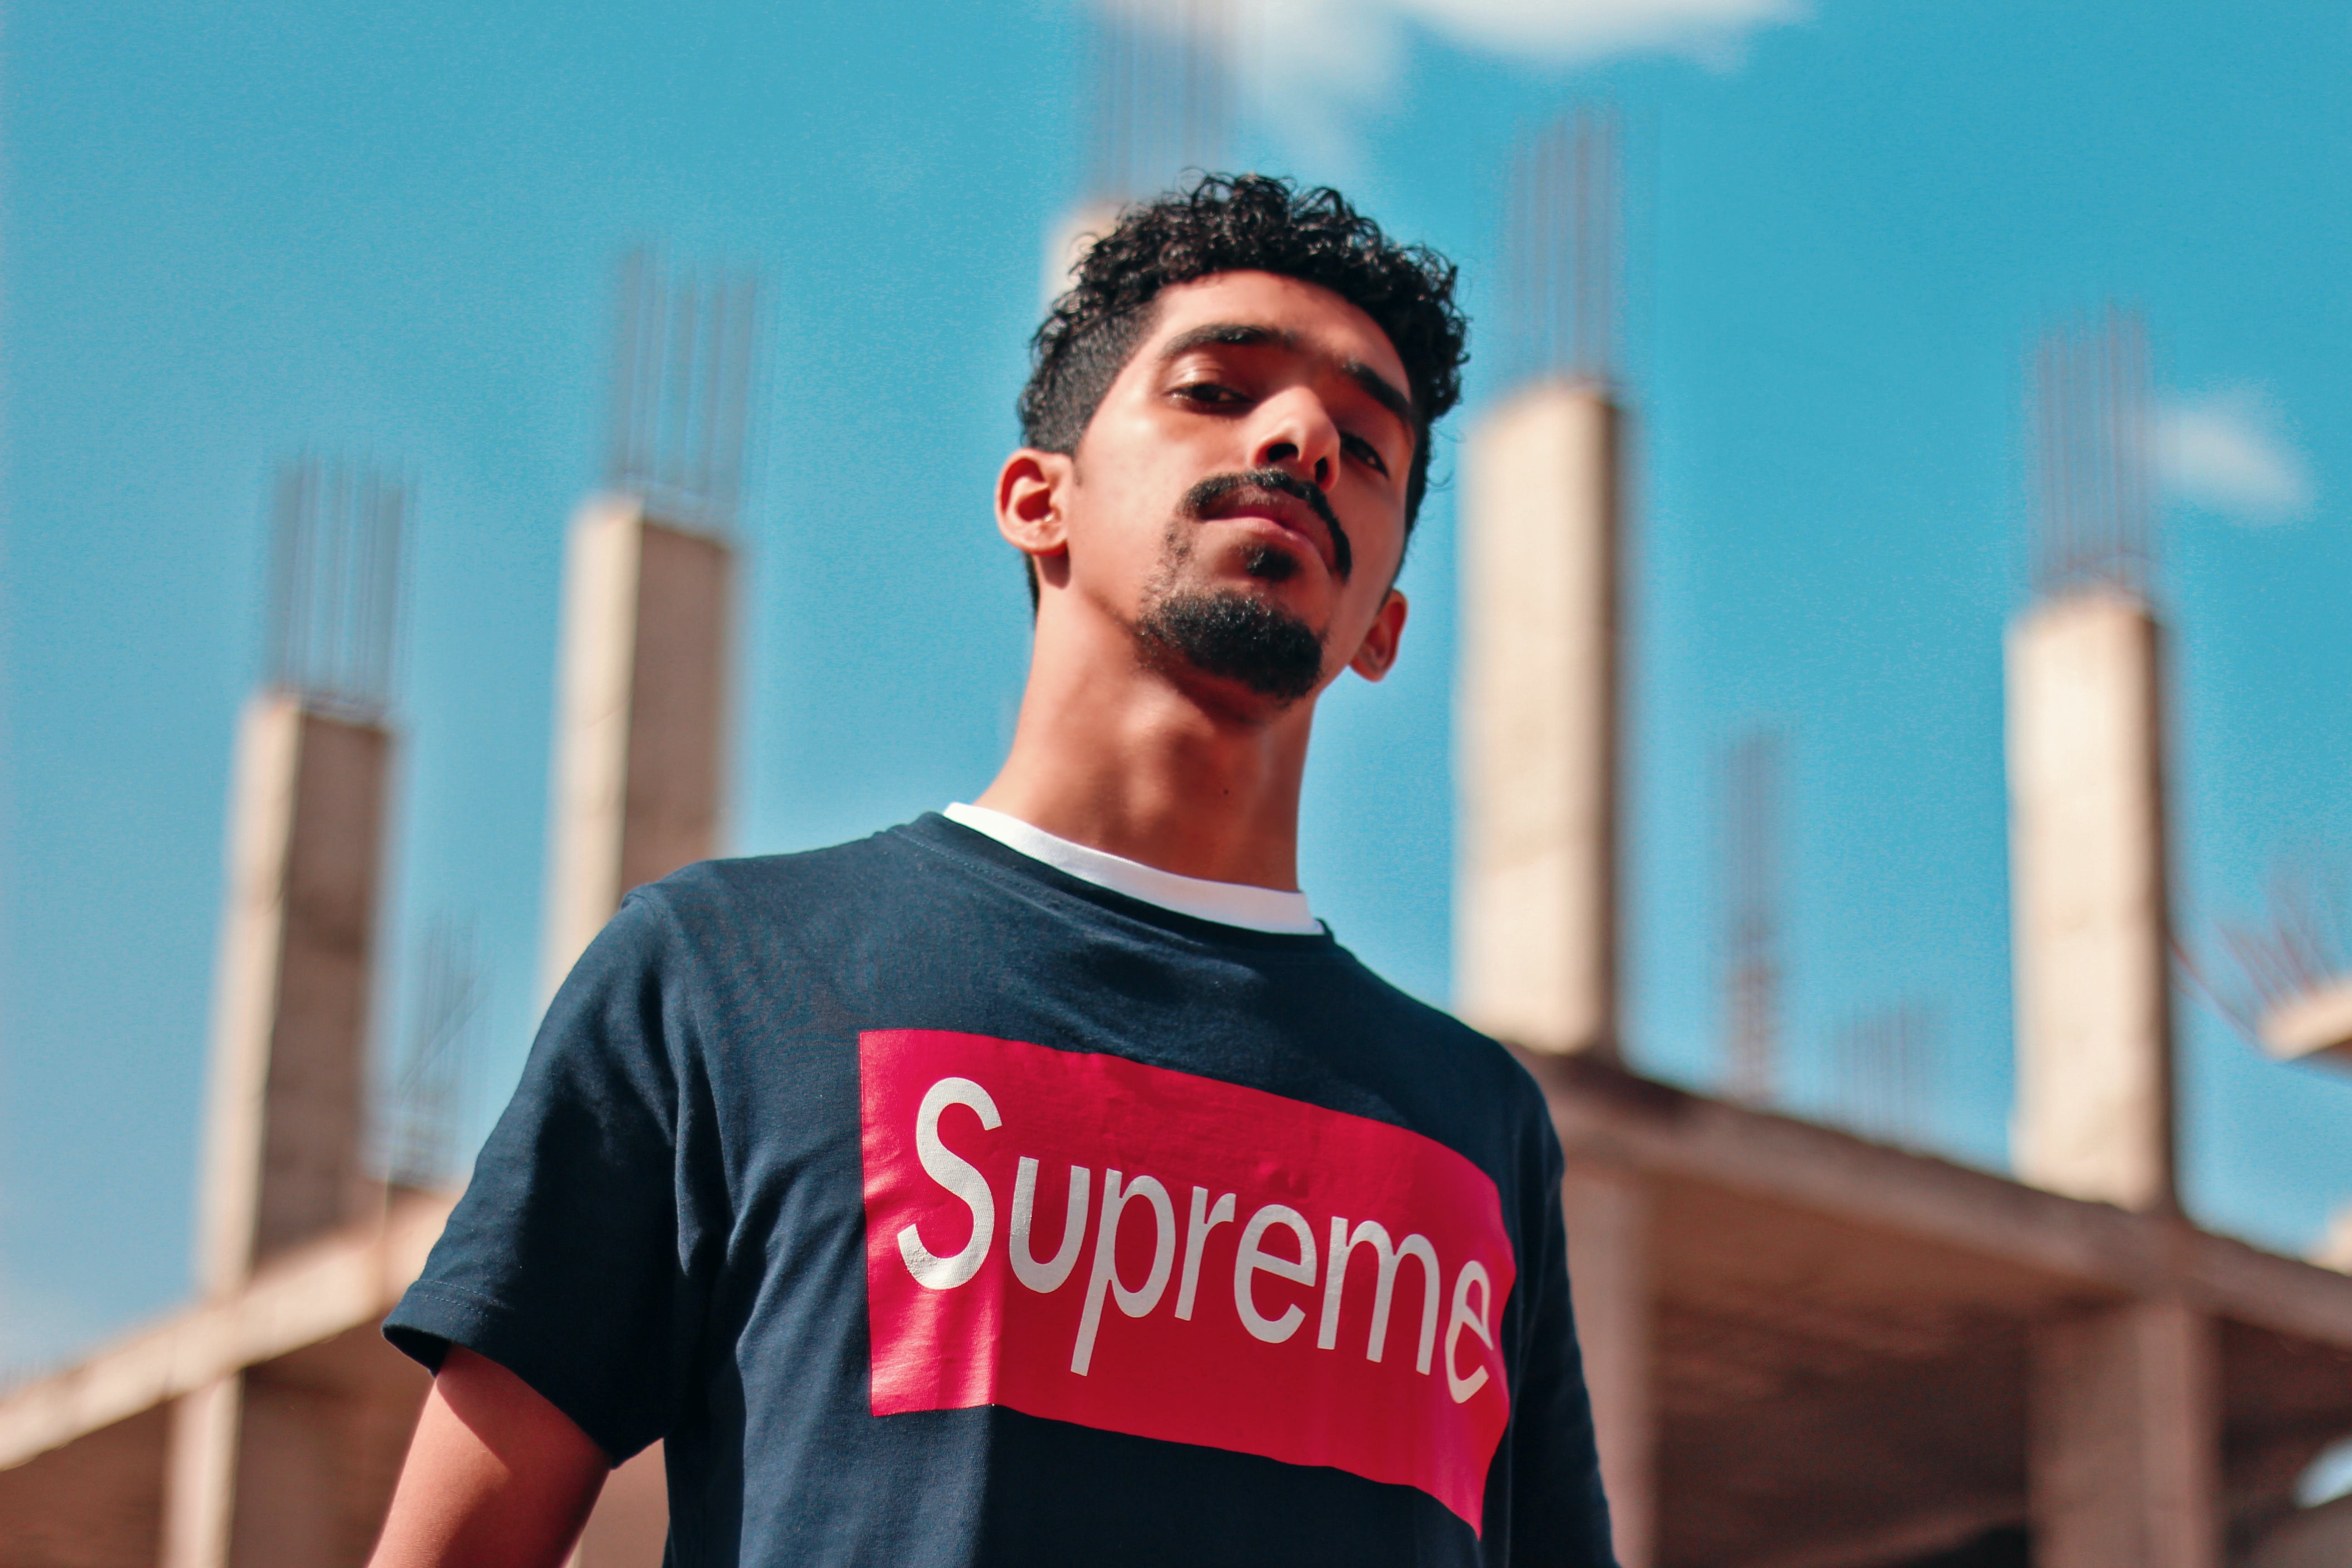 Man Wearing Black and Red Supreme Shirt Standing by the Constructed Building